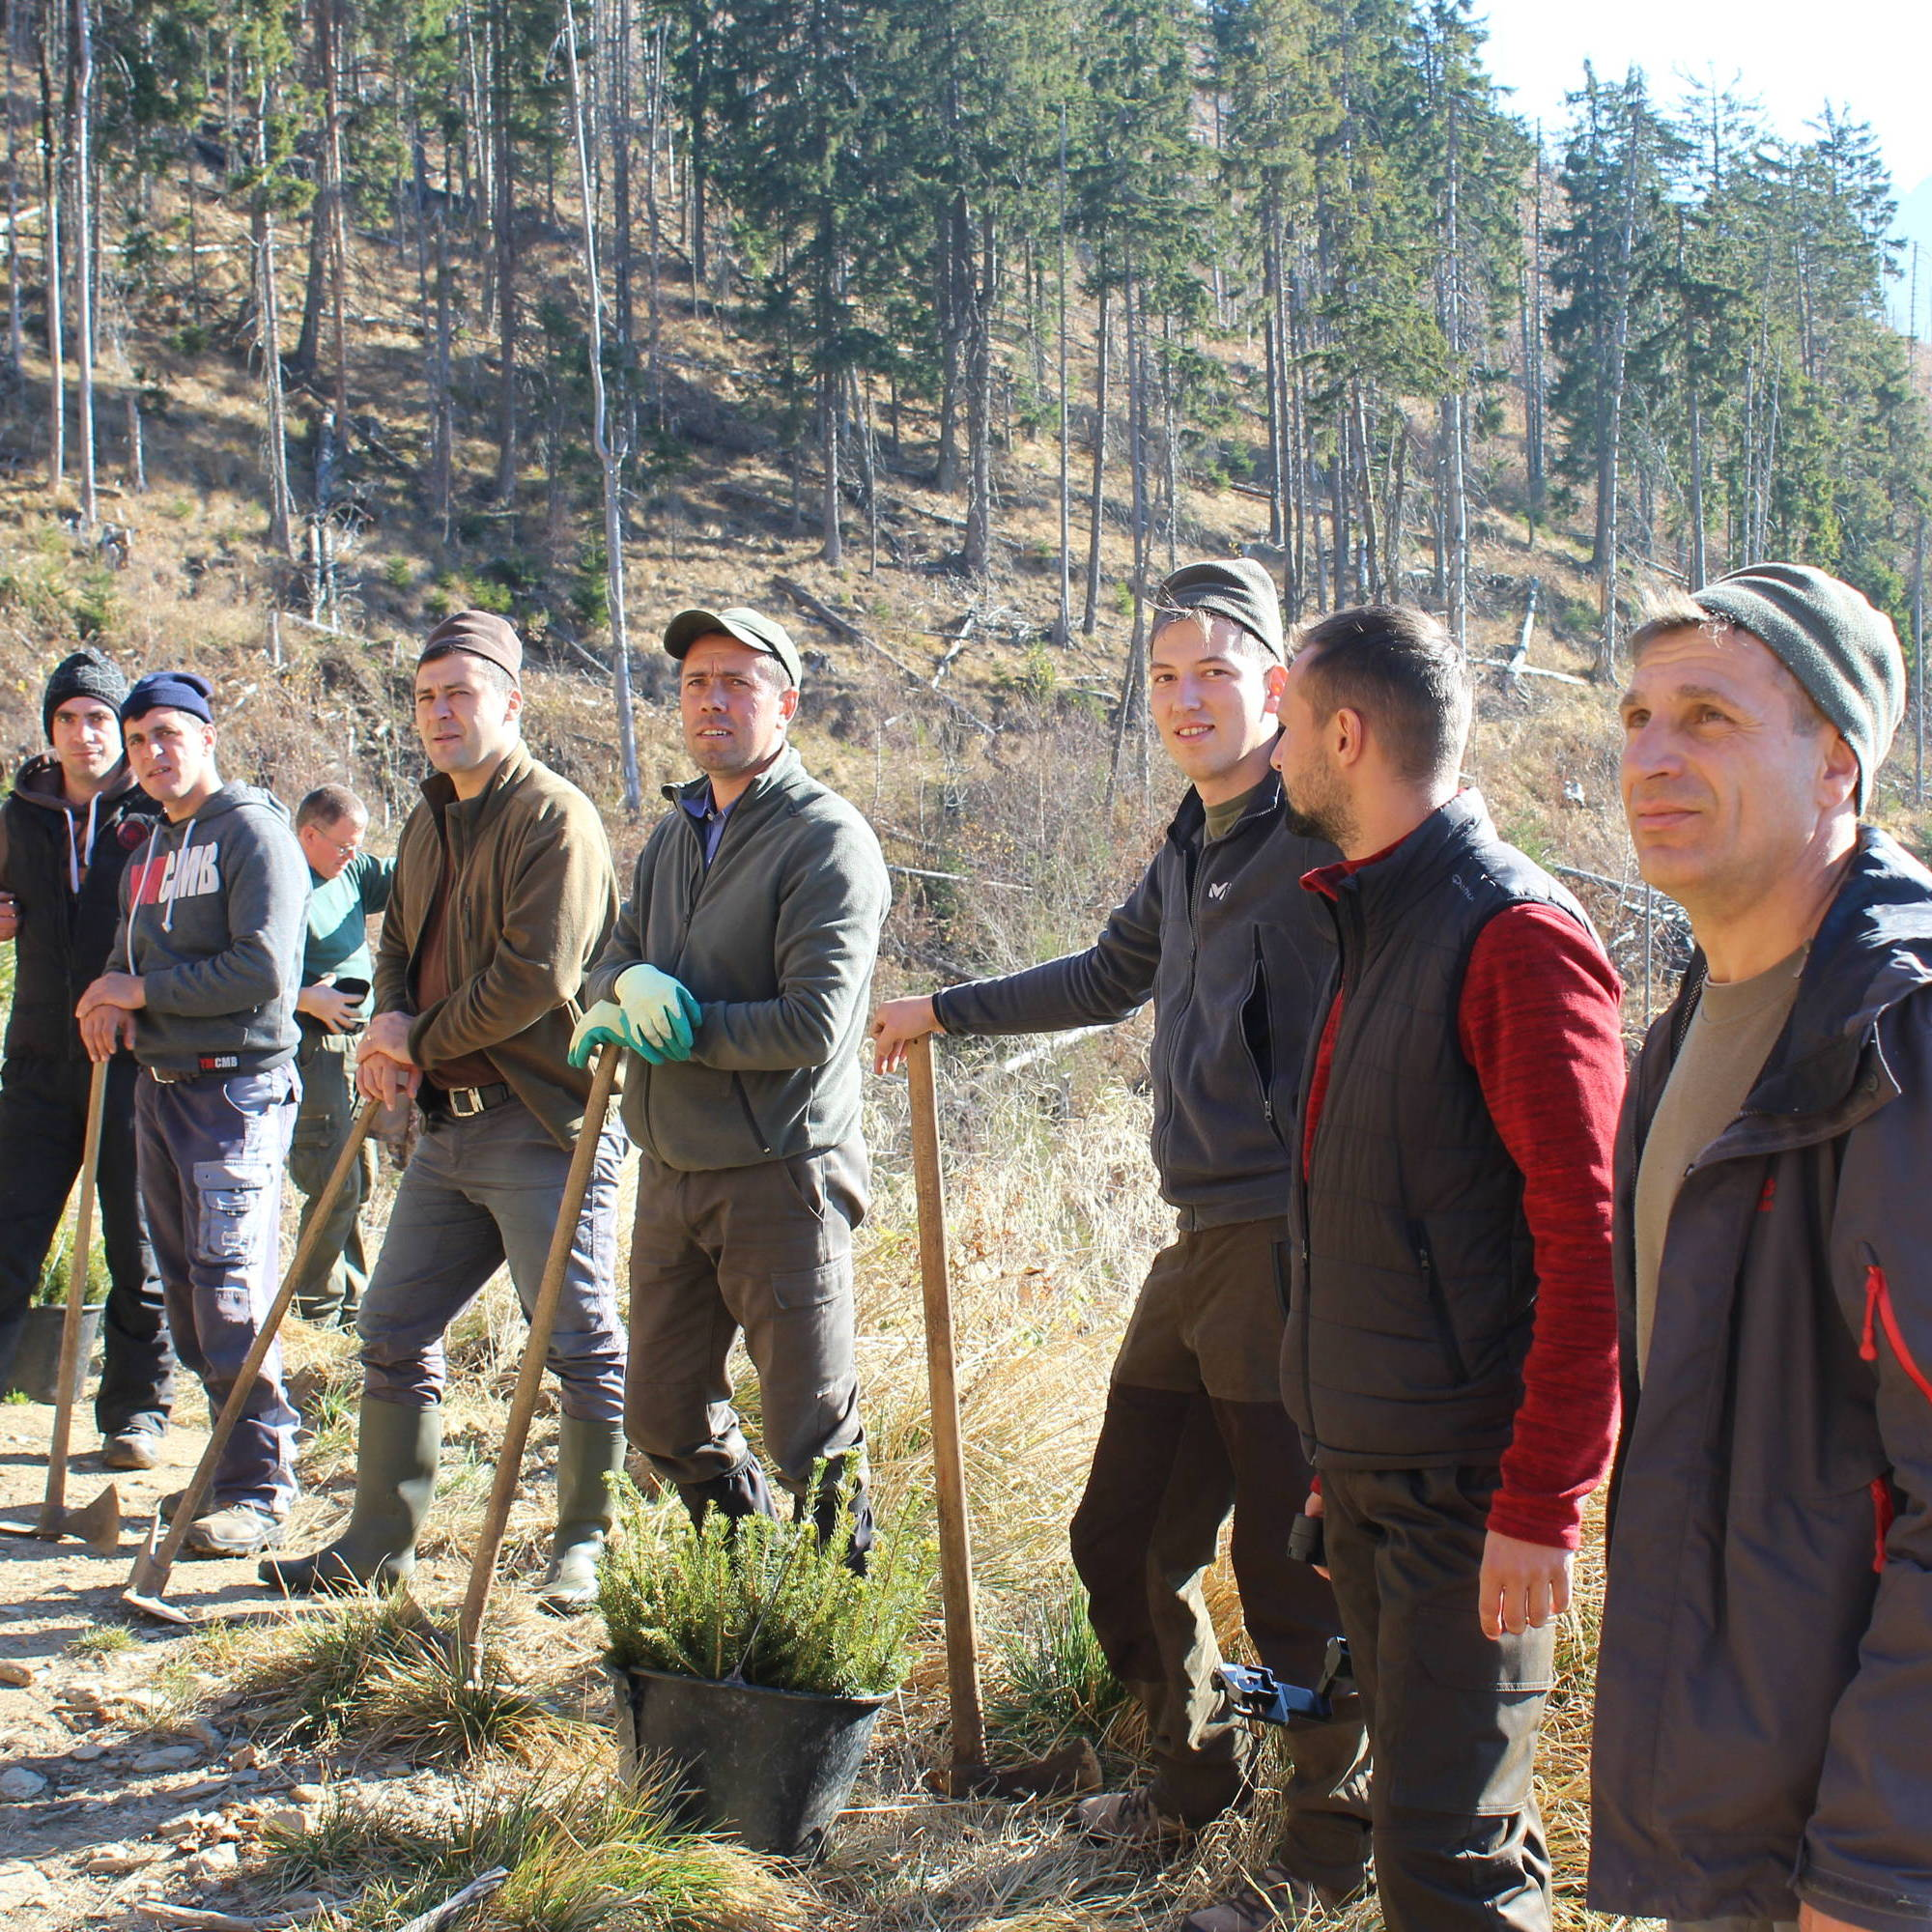 The team of planting stand in a line with their shovels and buckets of saplings